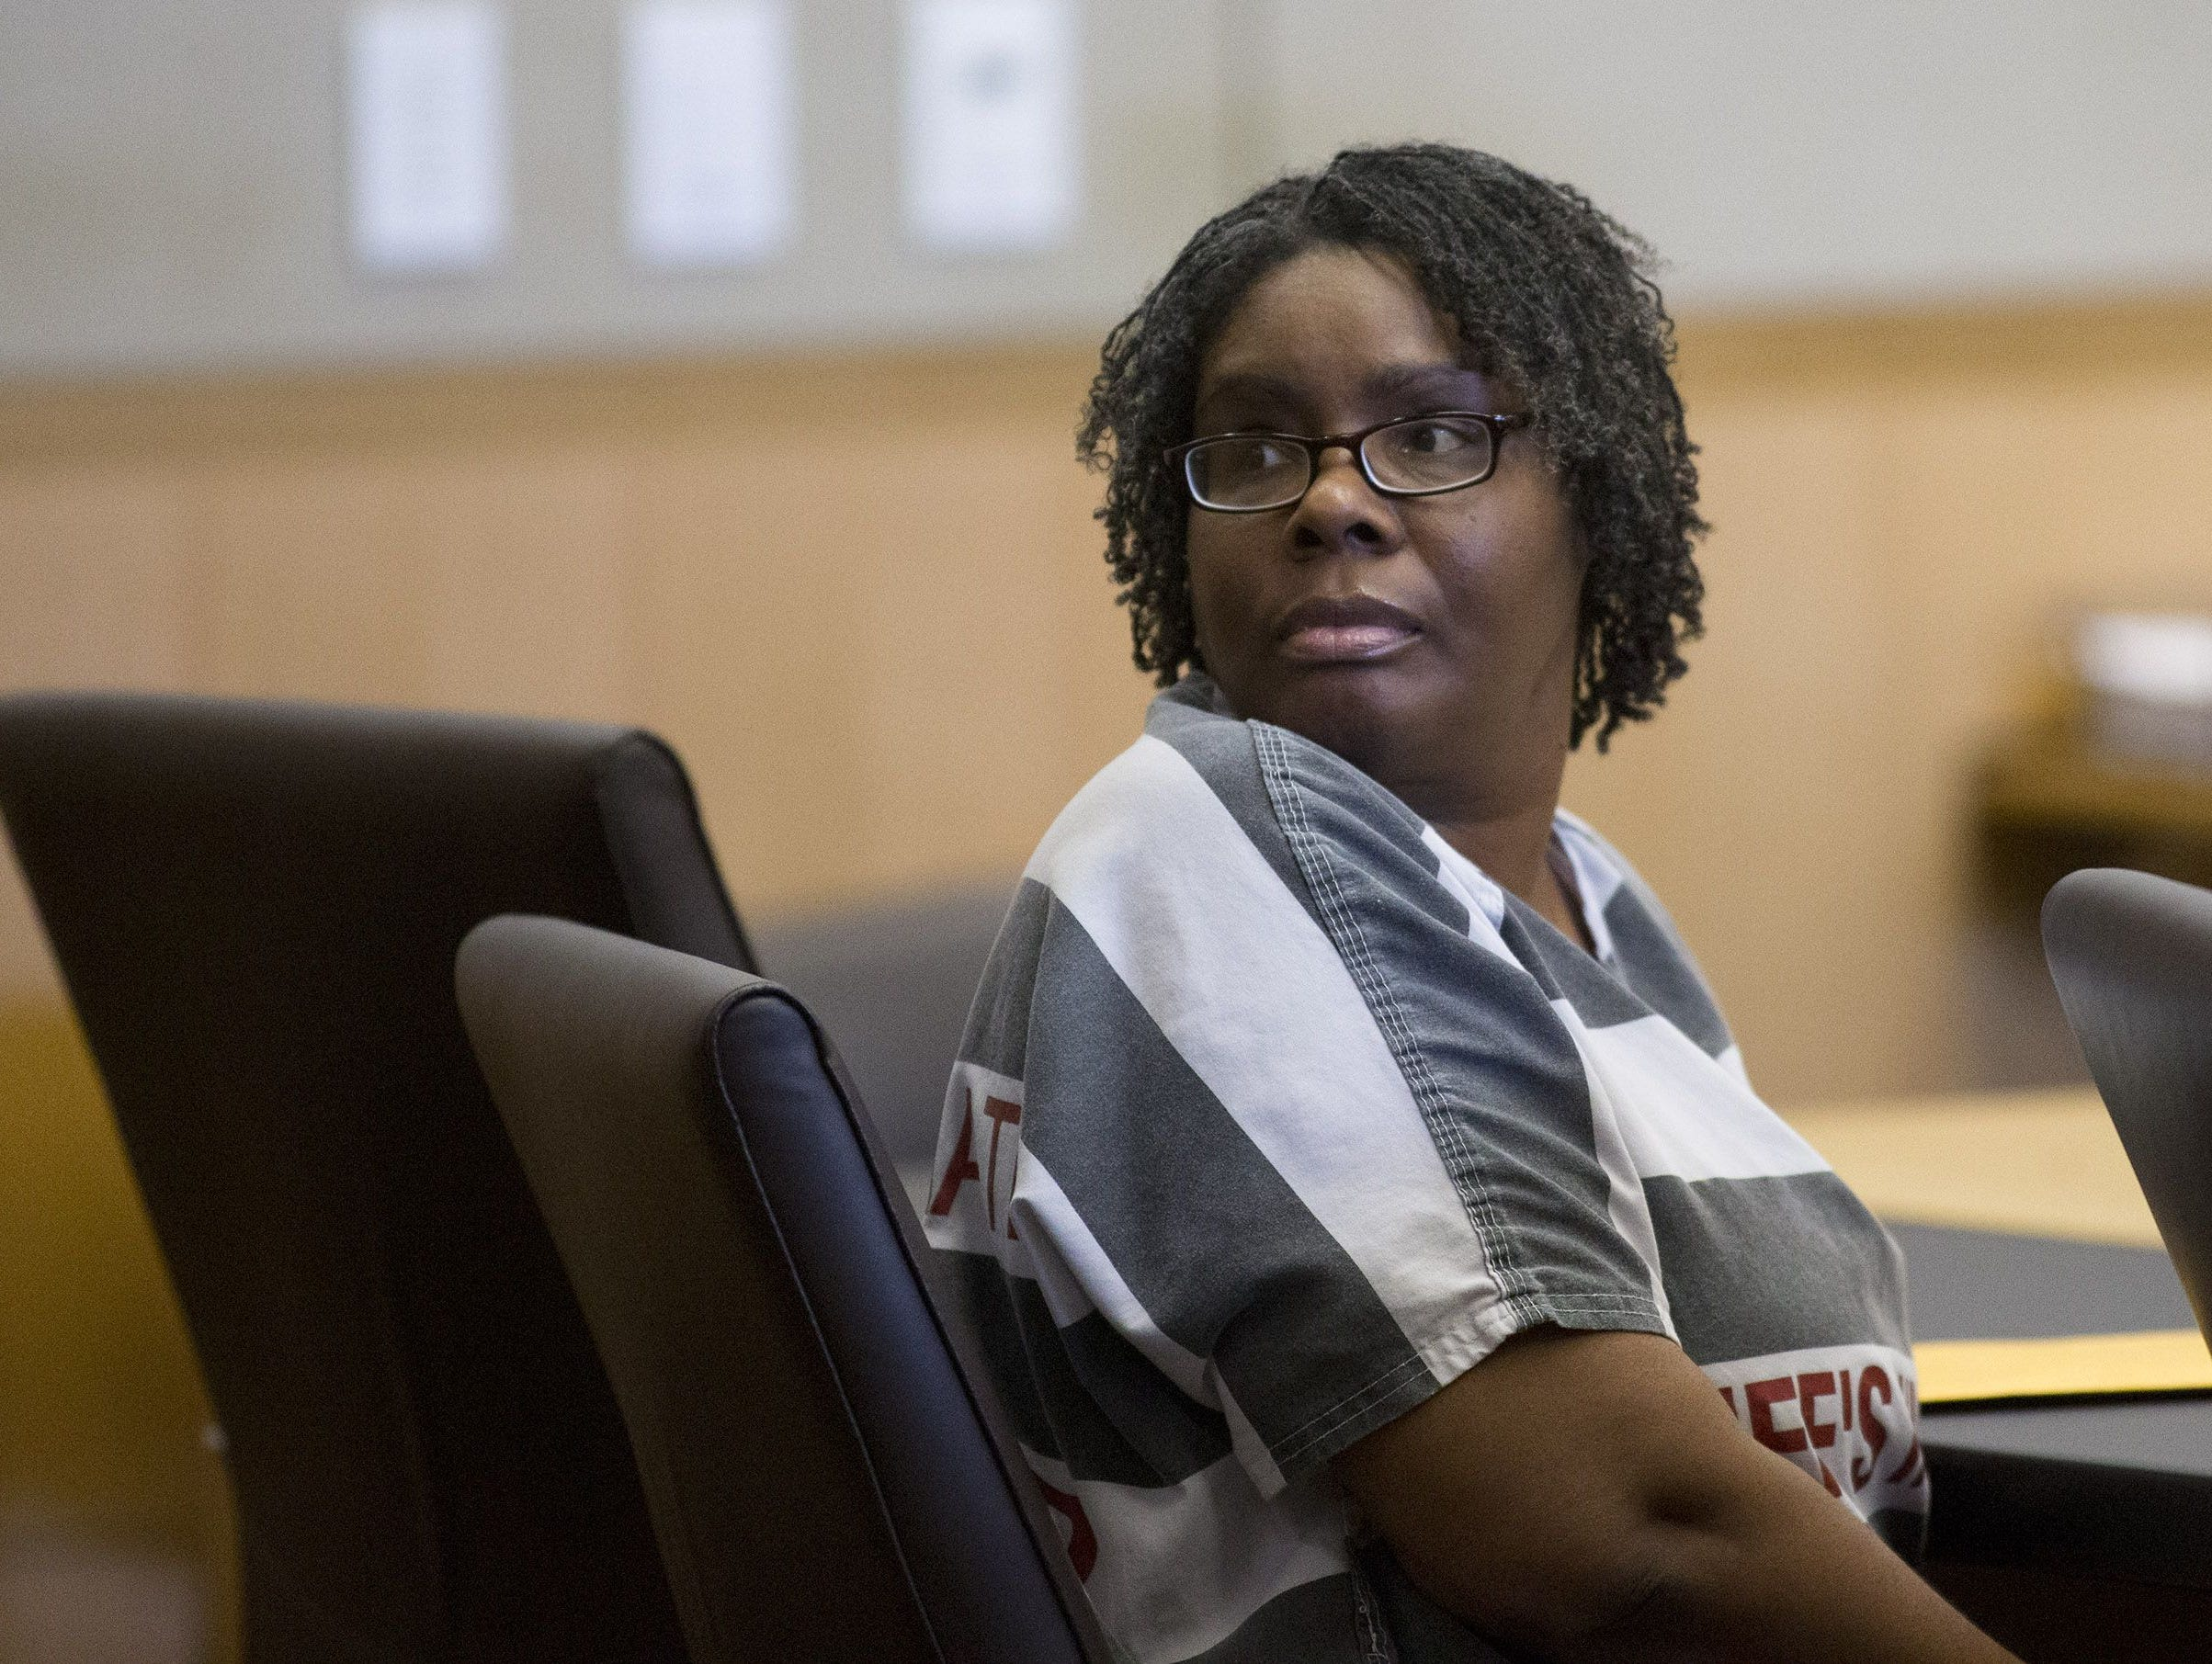 Jhessye Shockley case: Jerice Hunter, the 5-year-old's mother, was sentenced to life in prison in 2015.